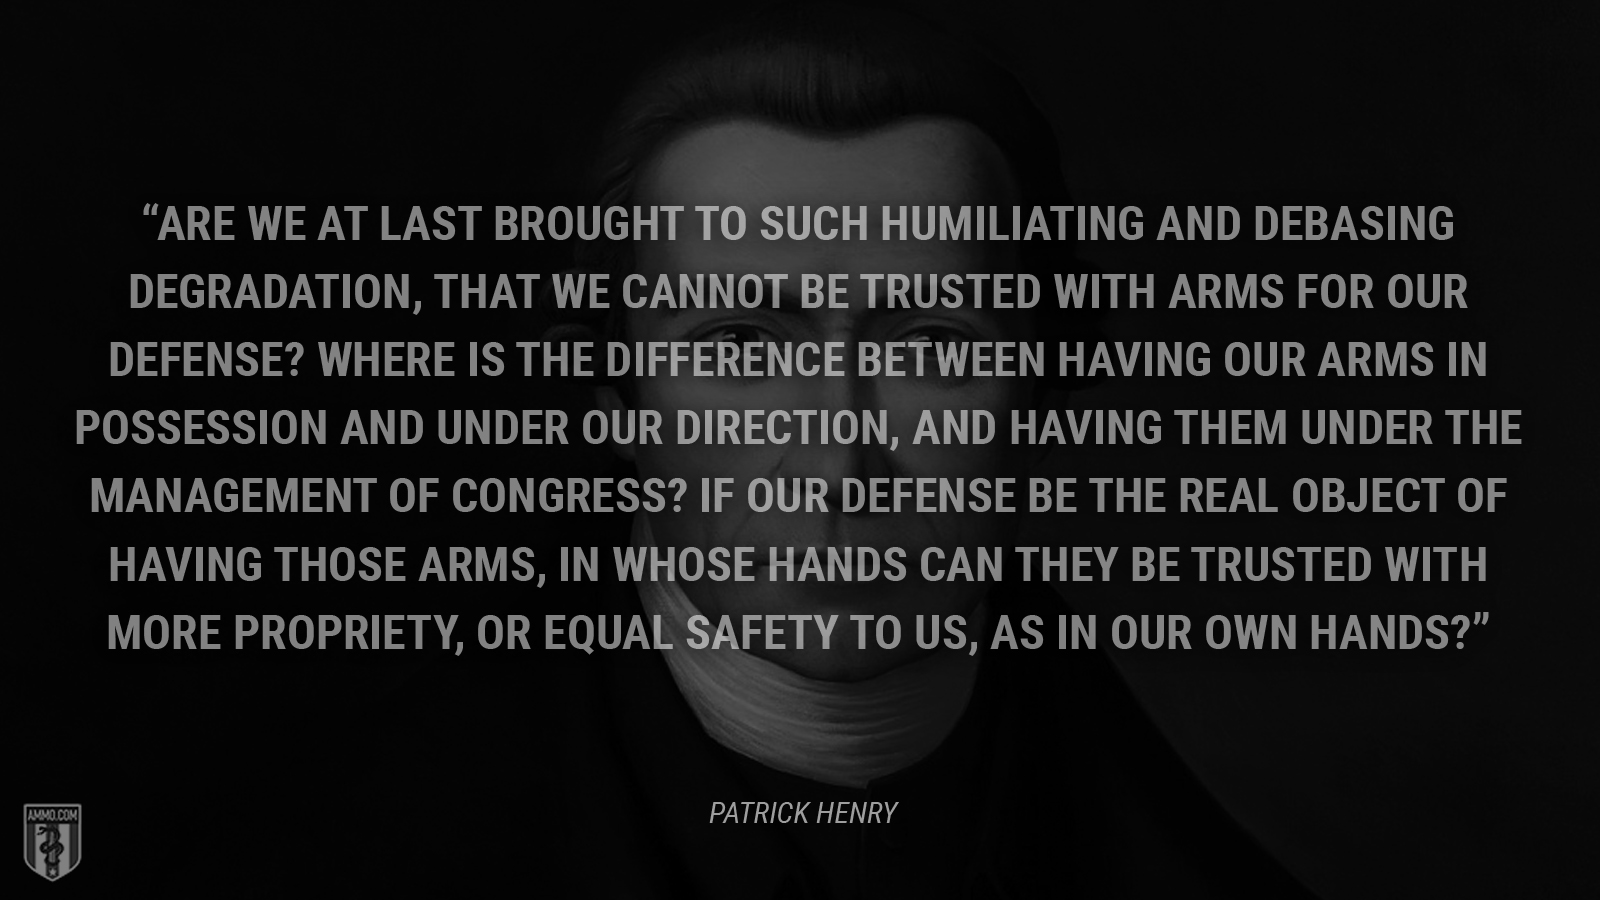 Patrick Henry, 184 years ago